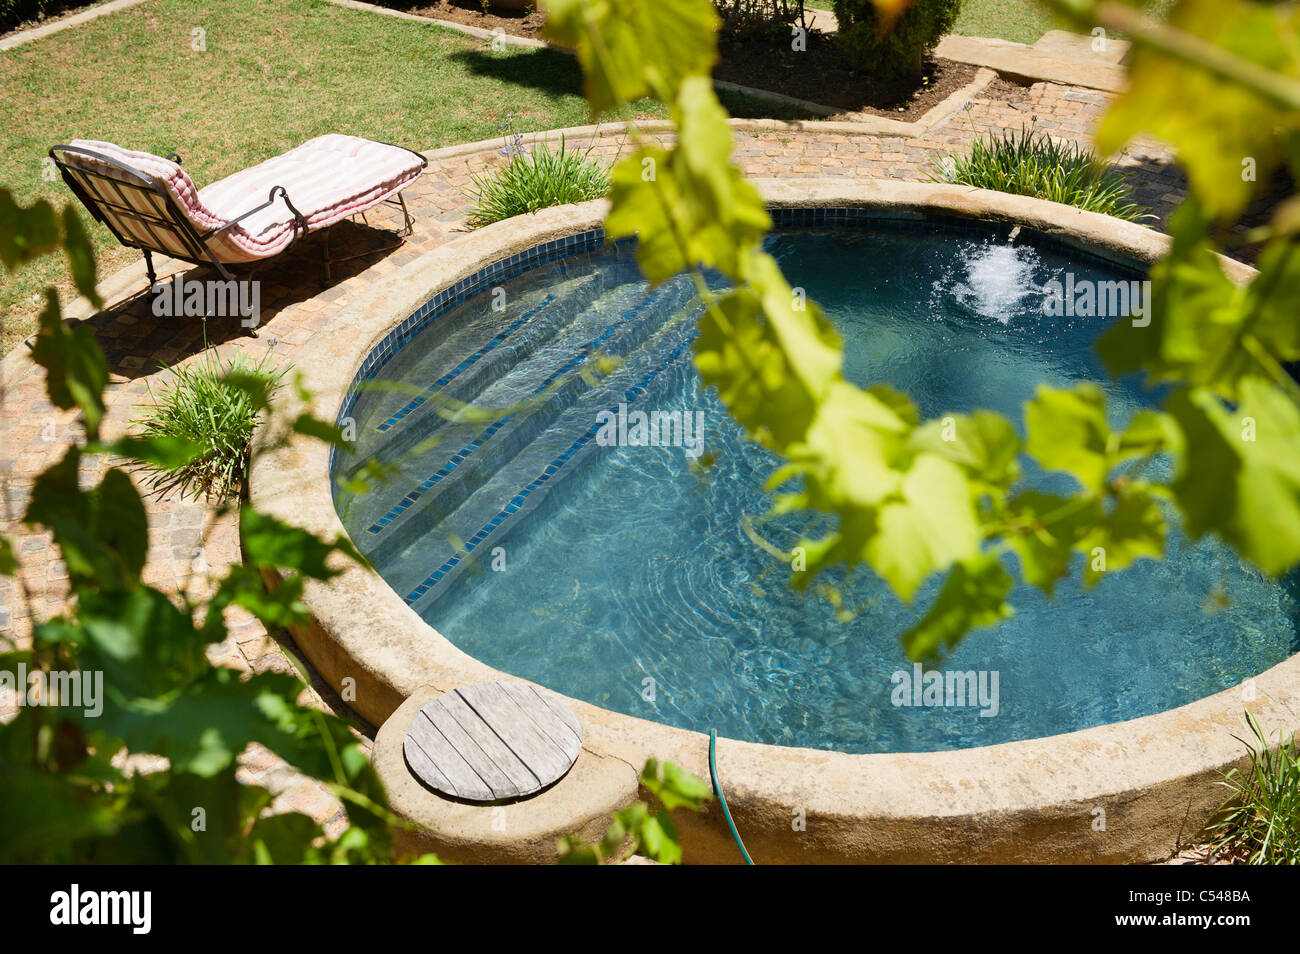 High angle view of a swimming pool Stock Photo